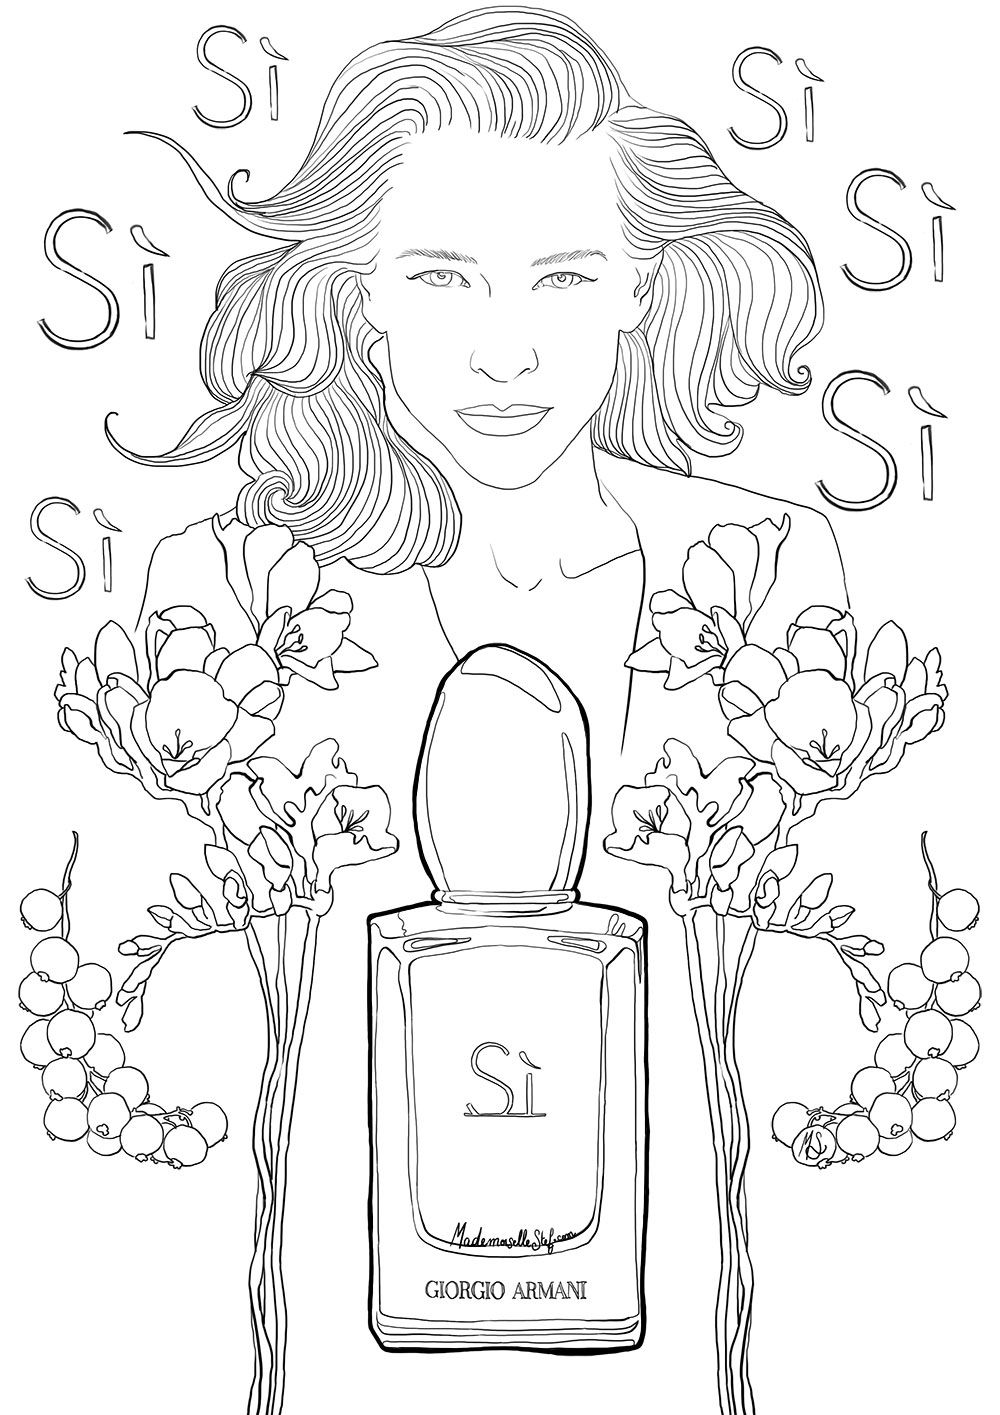 Coloriage pour adulte parfum si de giorgio armani adult coloring bottle and crayons - Dessin pour anniversaire adulte ...